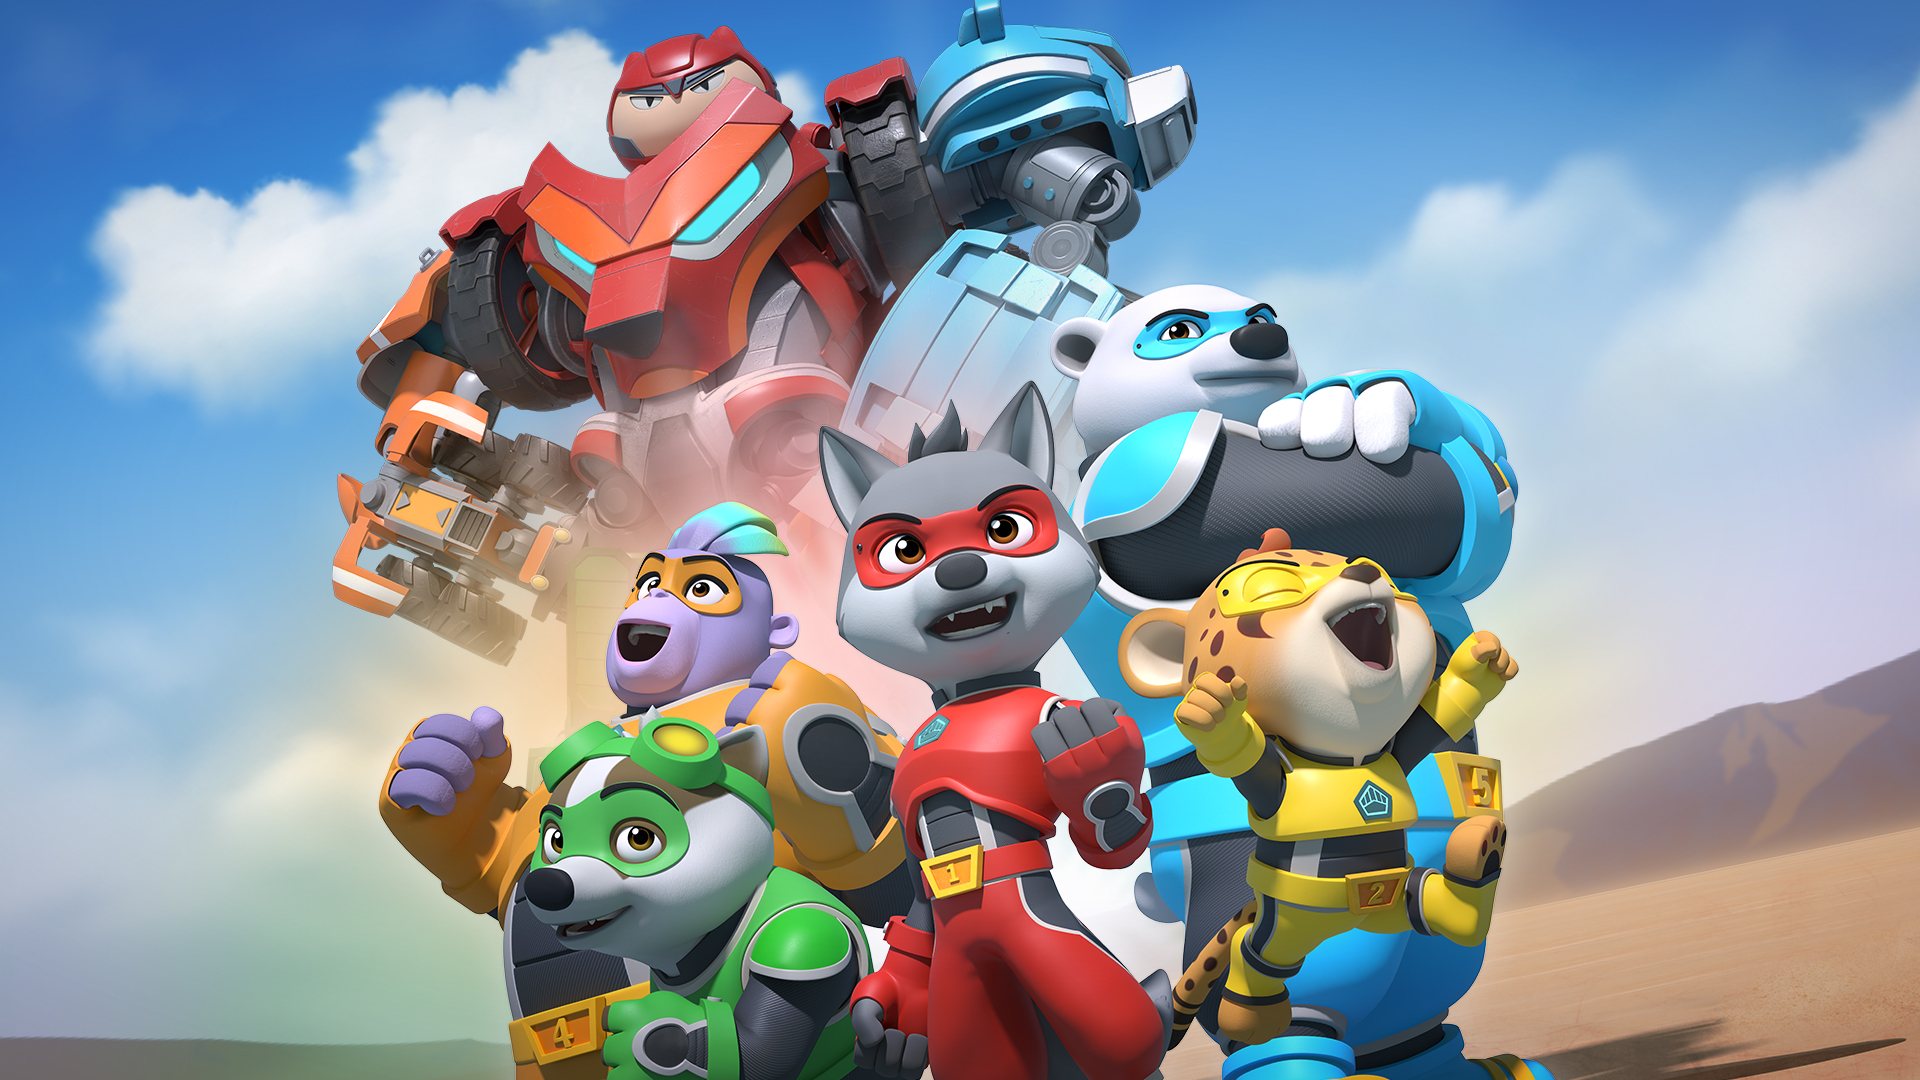 Kingdom Force – A New Force To Be Reckoned With, Coming To Boomerang! | Pressroom